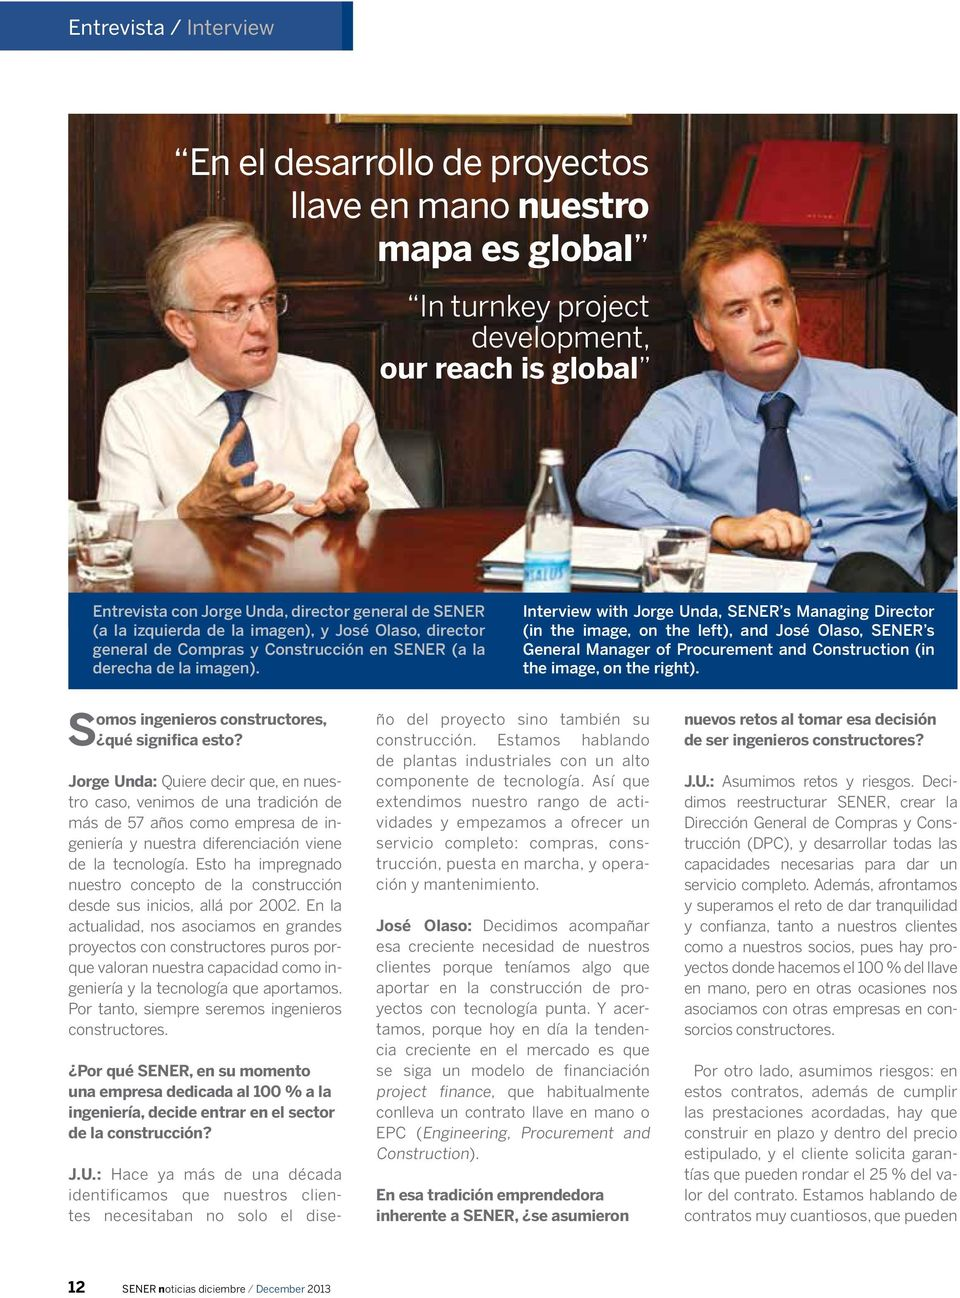 Interview with Jorge Unda, SENER s Managing Director (in the image, on the left), and José Olaso, SENER s General Manager of Procurement and Construction (in the image, on the right).